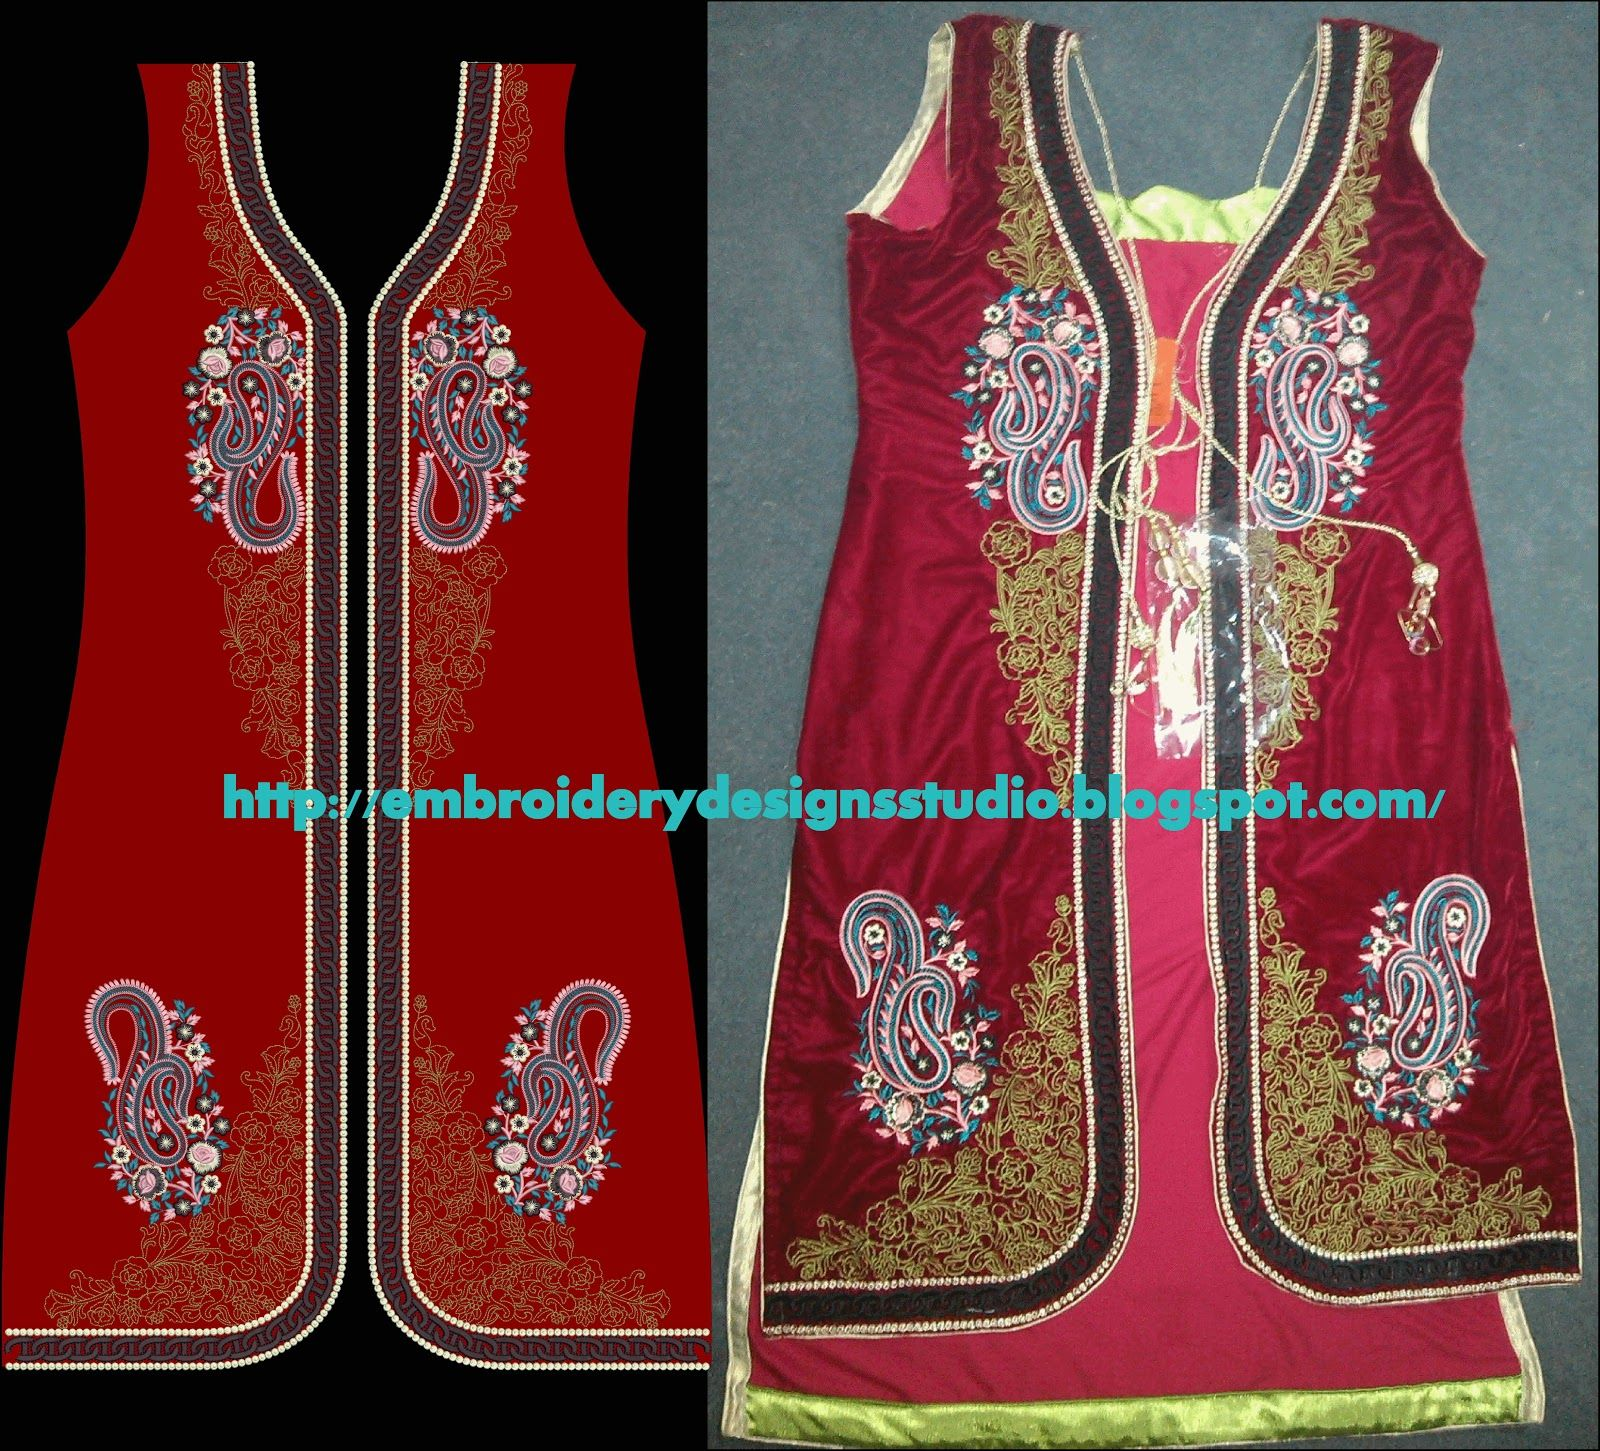 pearl embroidery designs for suits - Google Search | oll